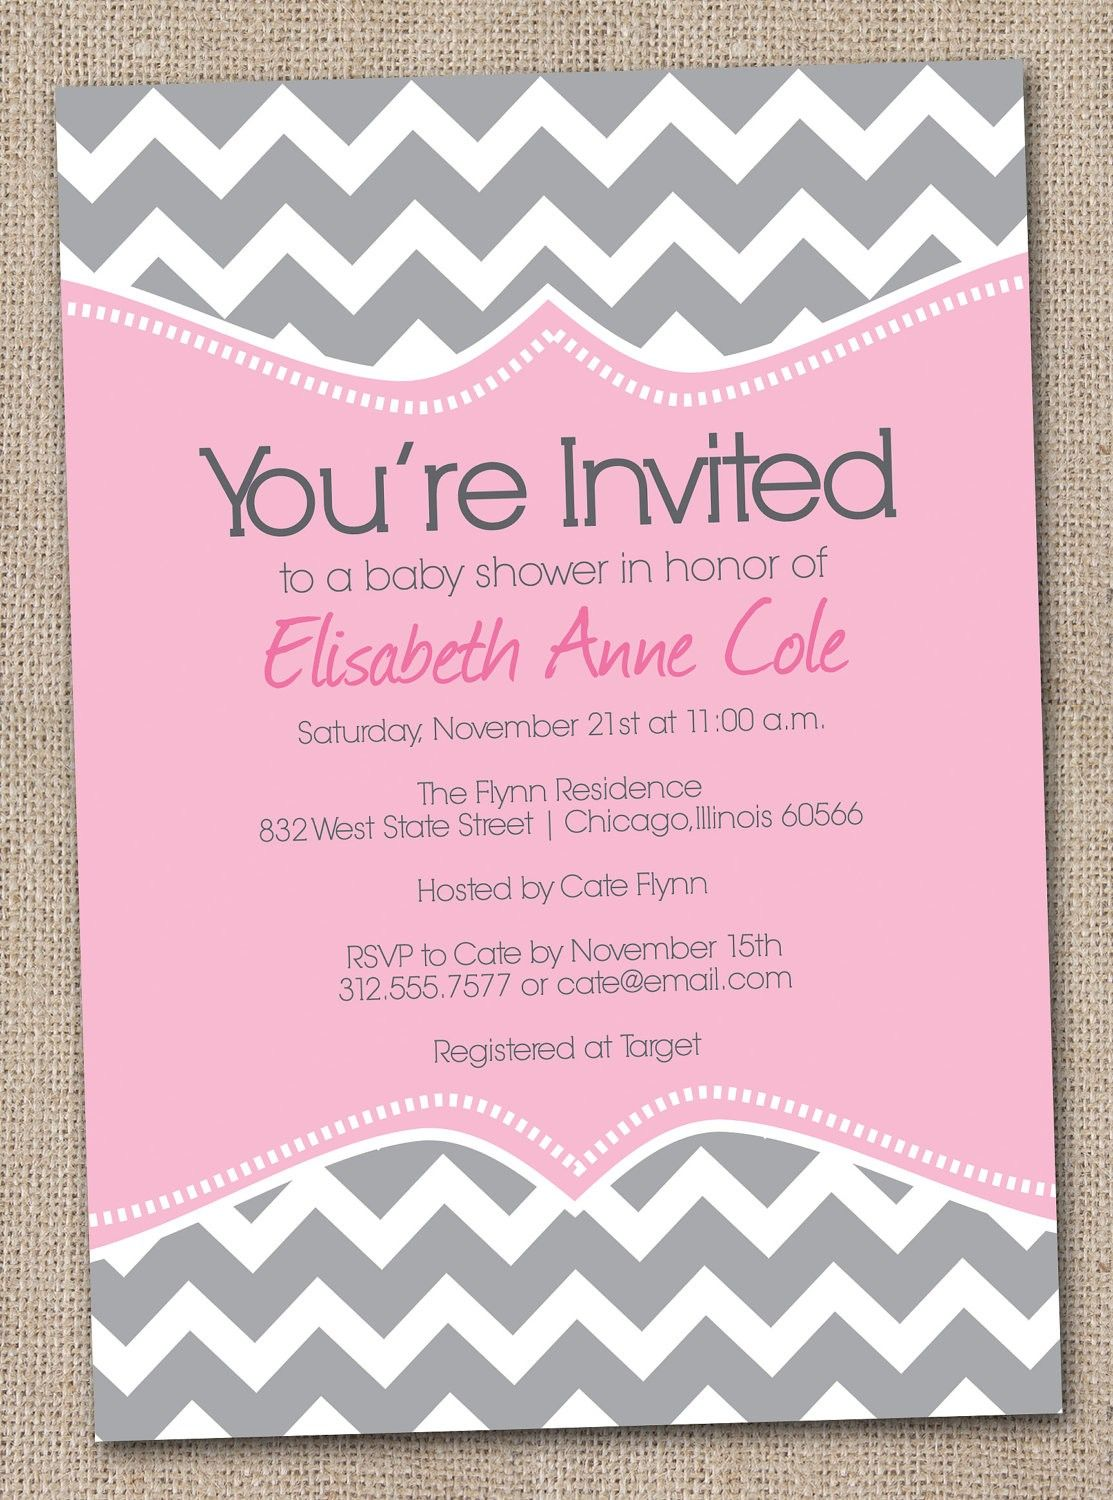 Baby Shower Invite Template Printable Free | clothing | Pinterest ...